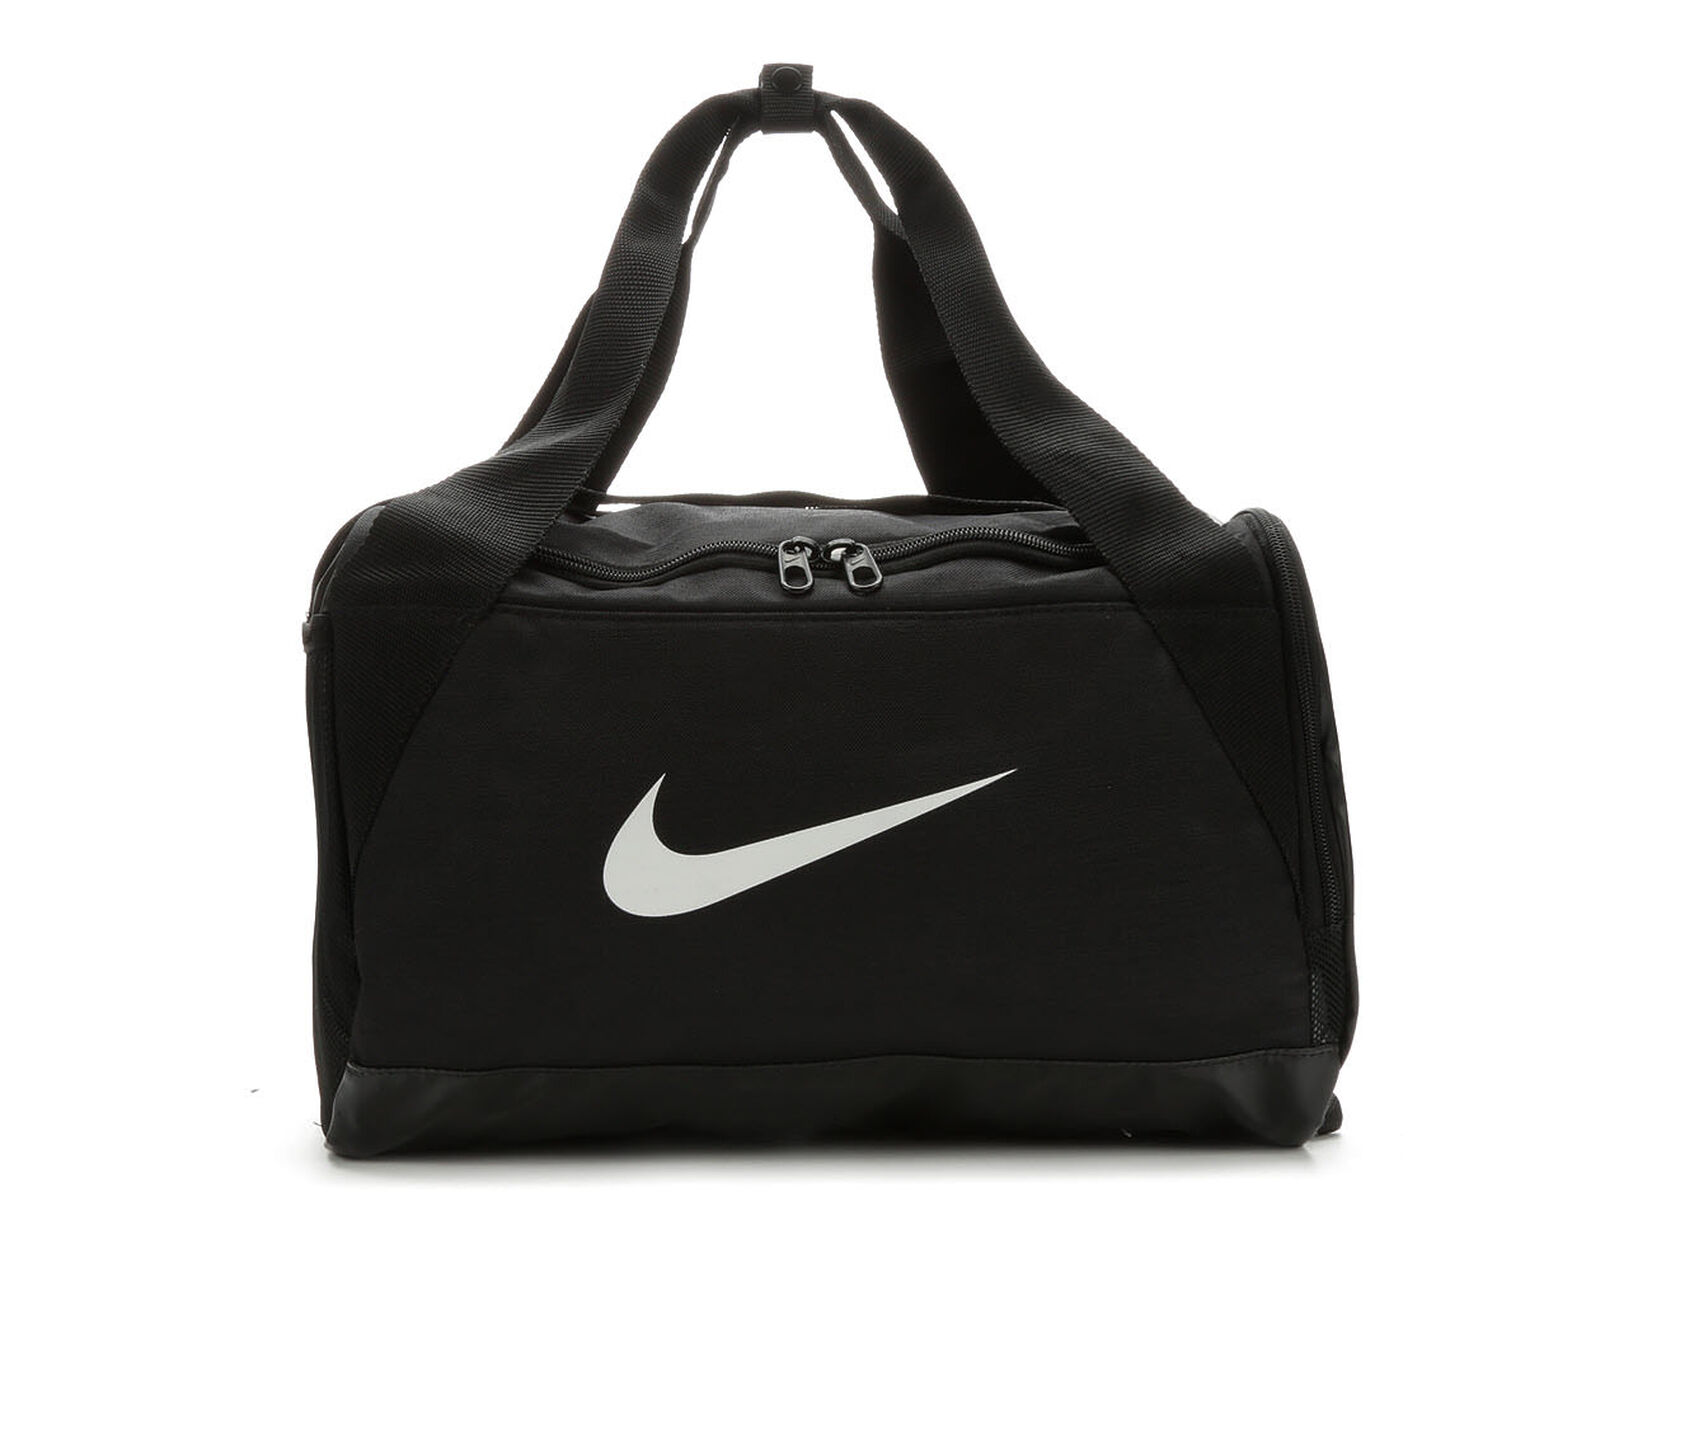 bc9876b3f520 Nike Brasilia Extra Small Duffel Bag. Previous